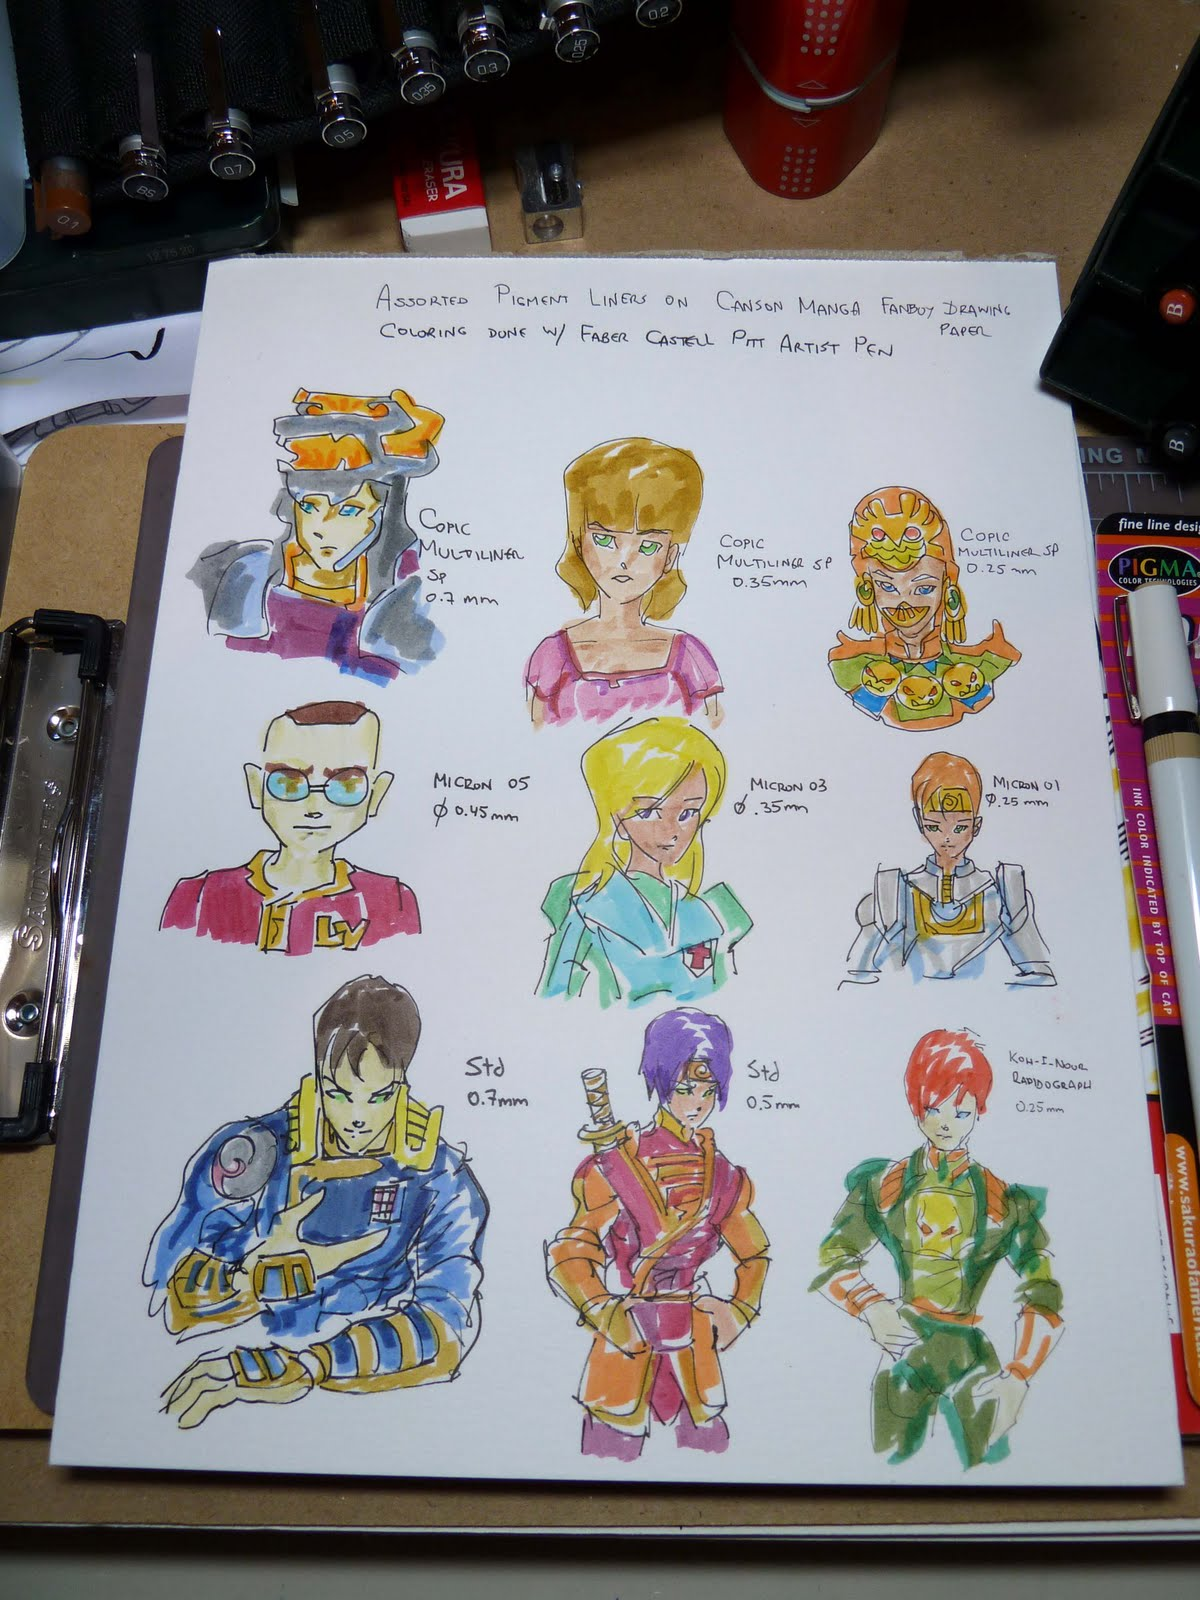 faber castell pitt artist pens compatibility and coloring tests on